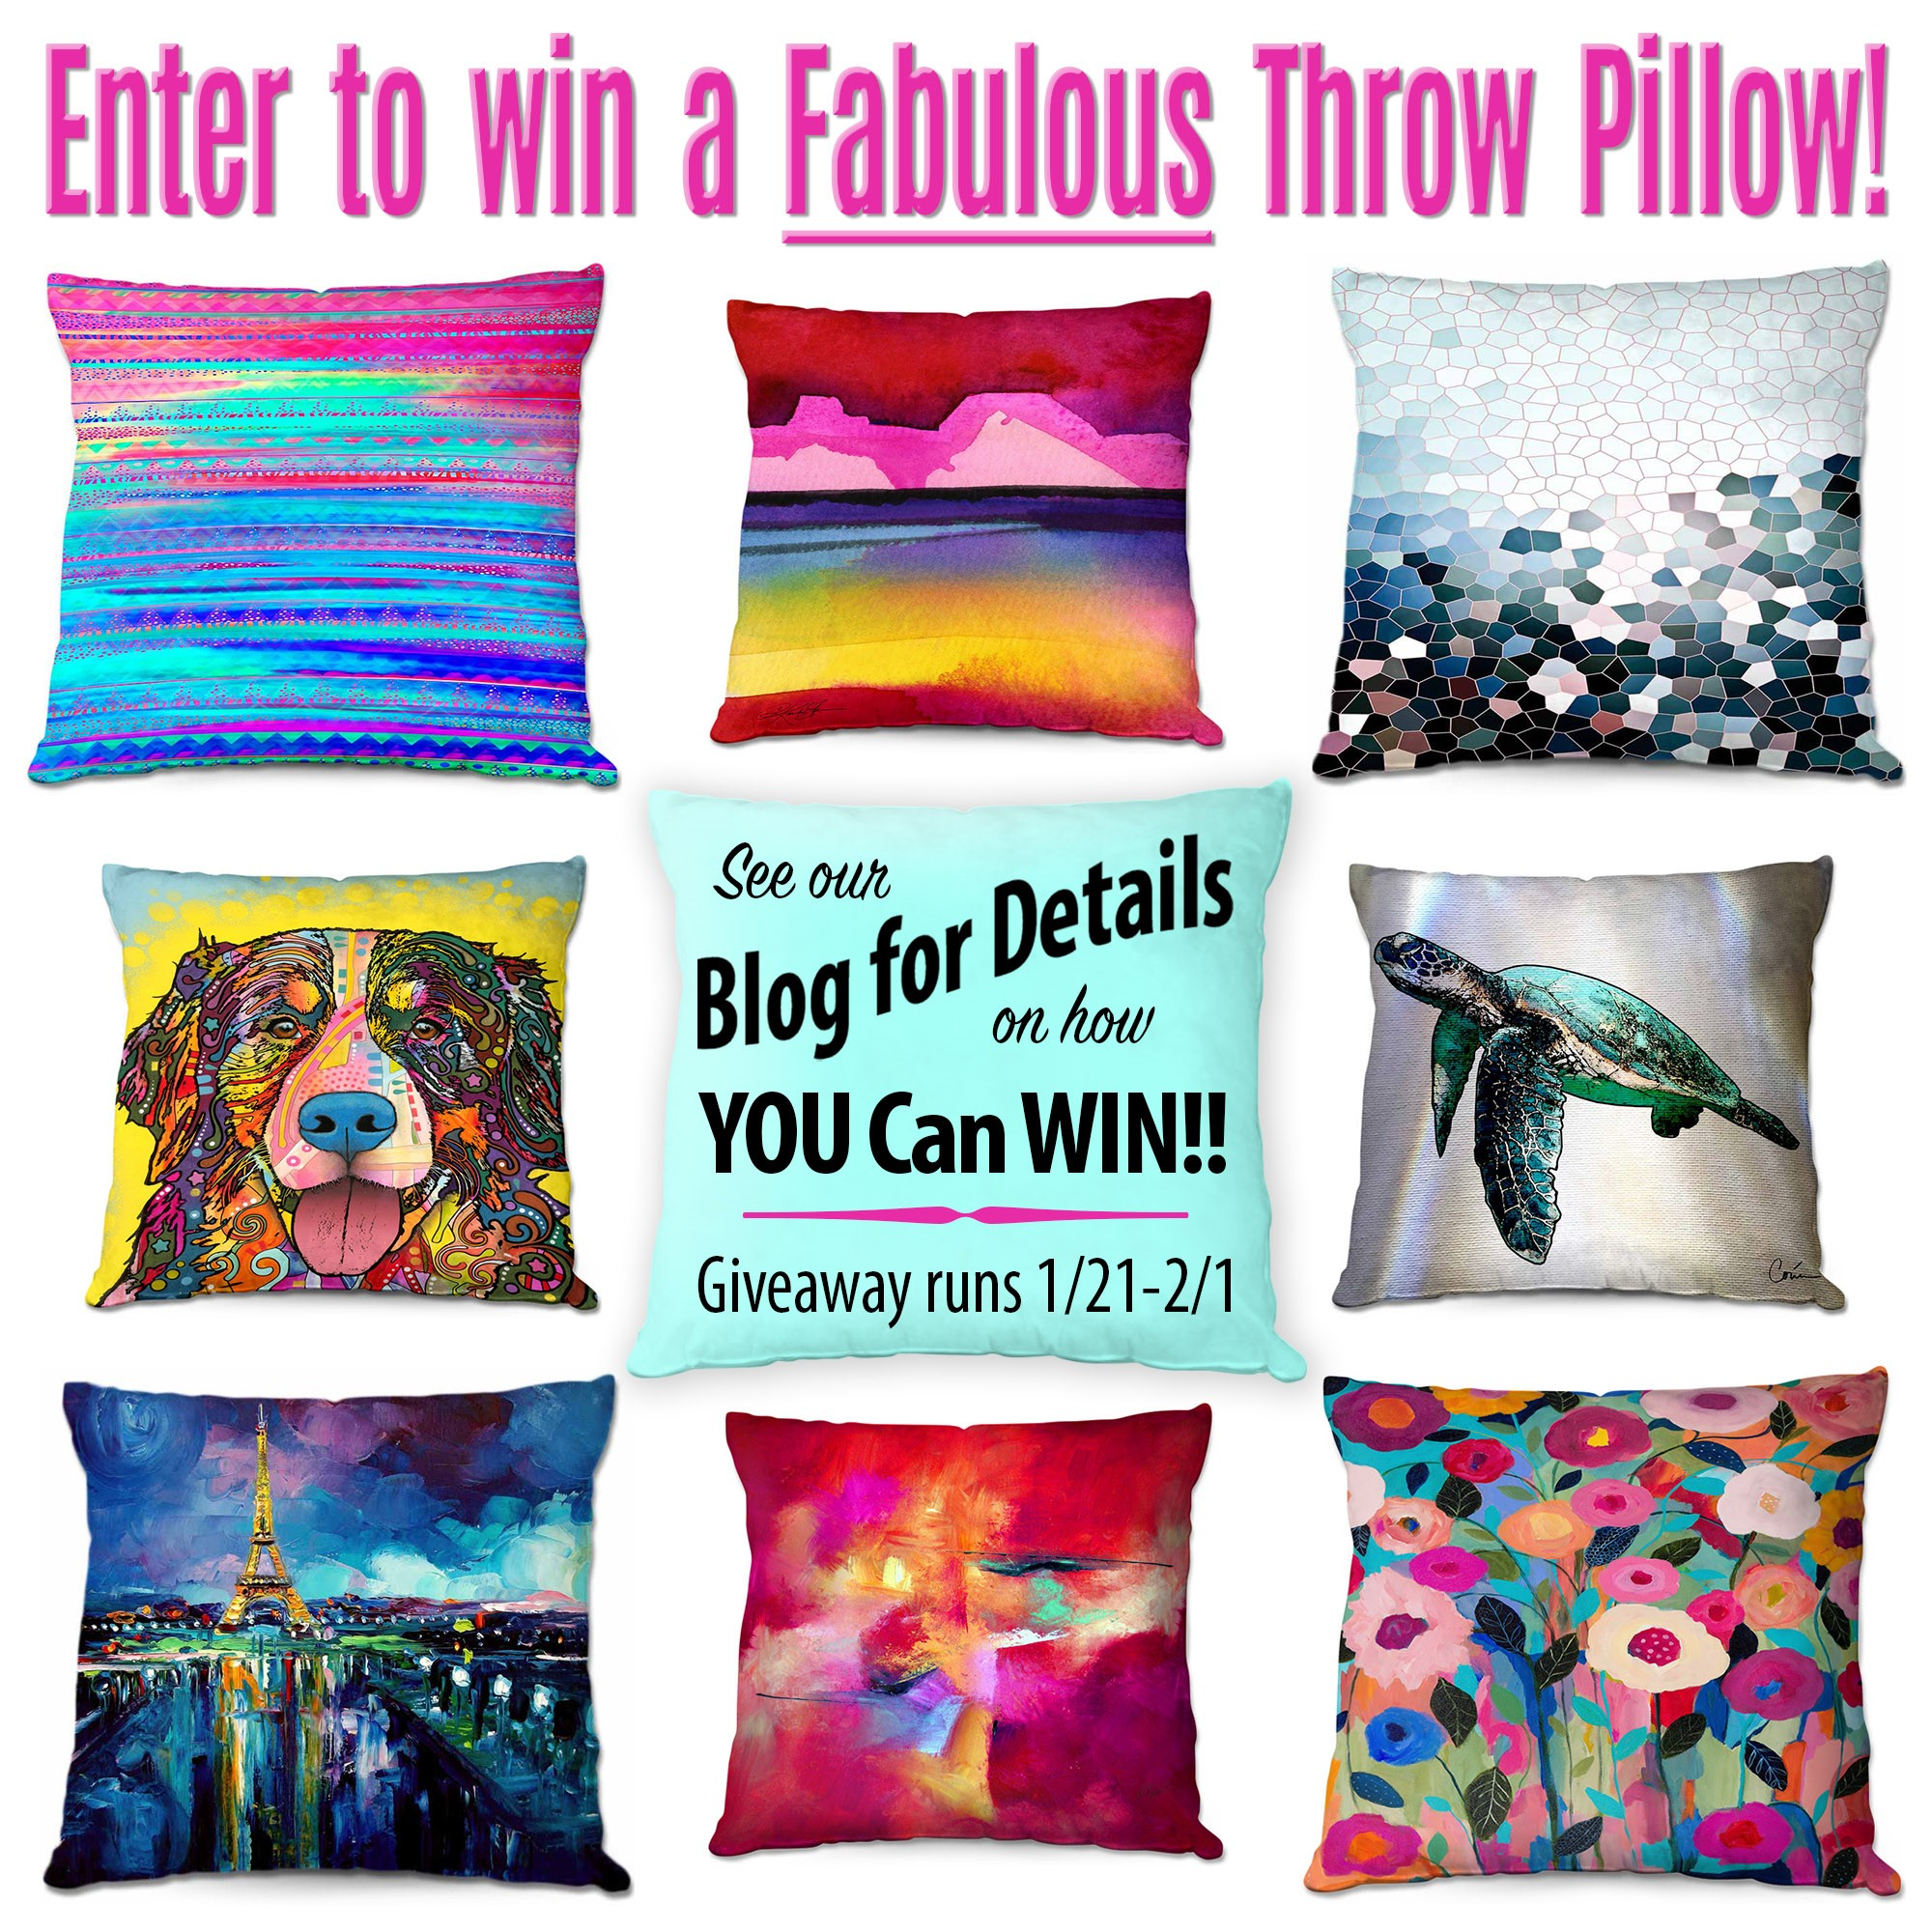 Pillow Give Away